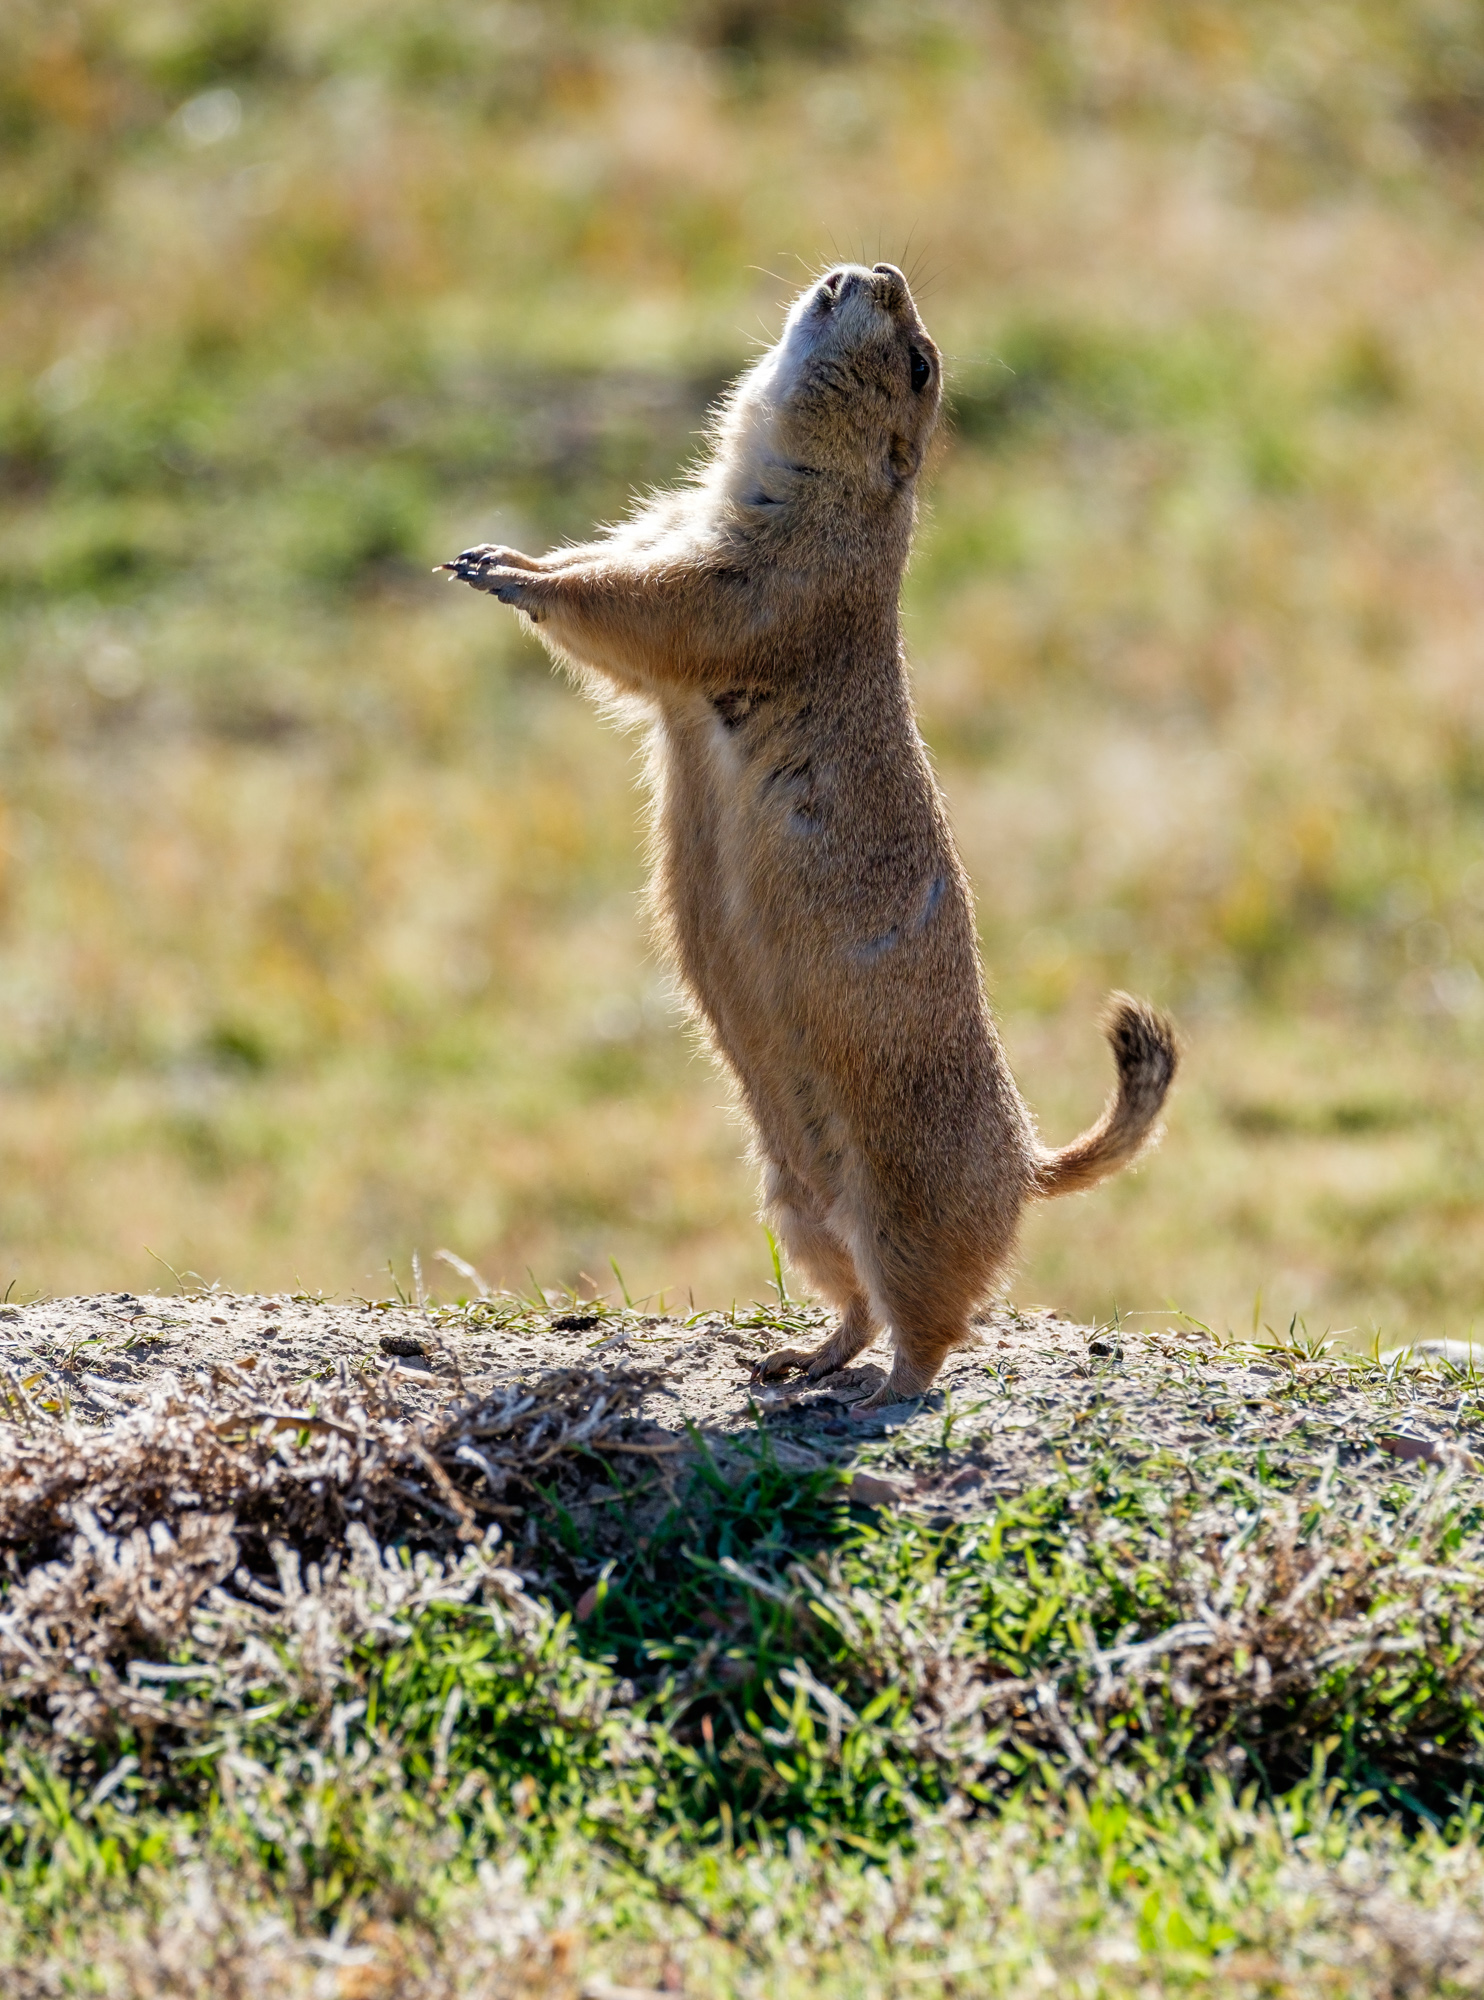 Where there are prairies, there are prairie dogs.